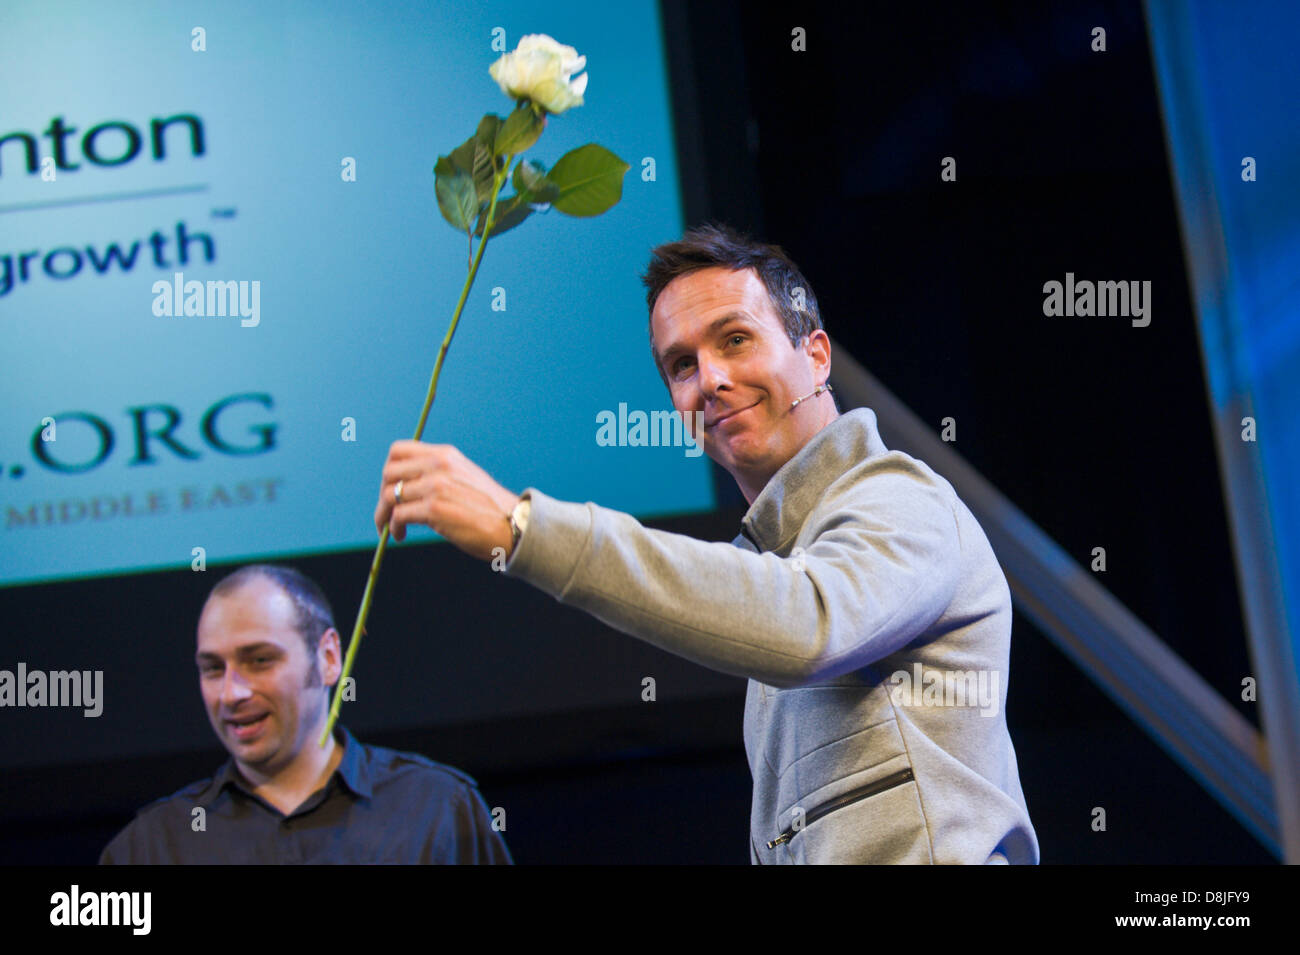 Michael Vaughan batsman and former England Cricket Test captain speaking at Hay Festival 2013 Hay on Wye Powys Wales Stock Photo